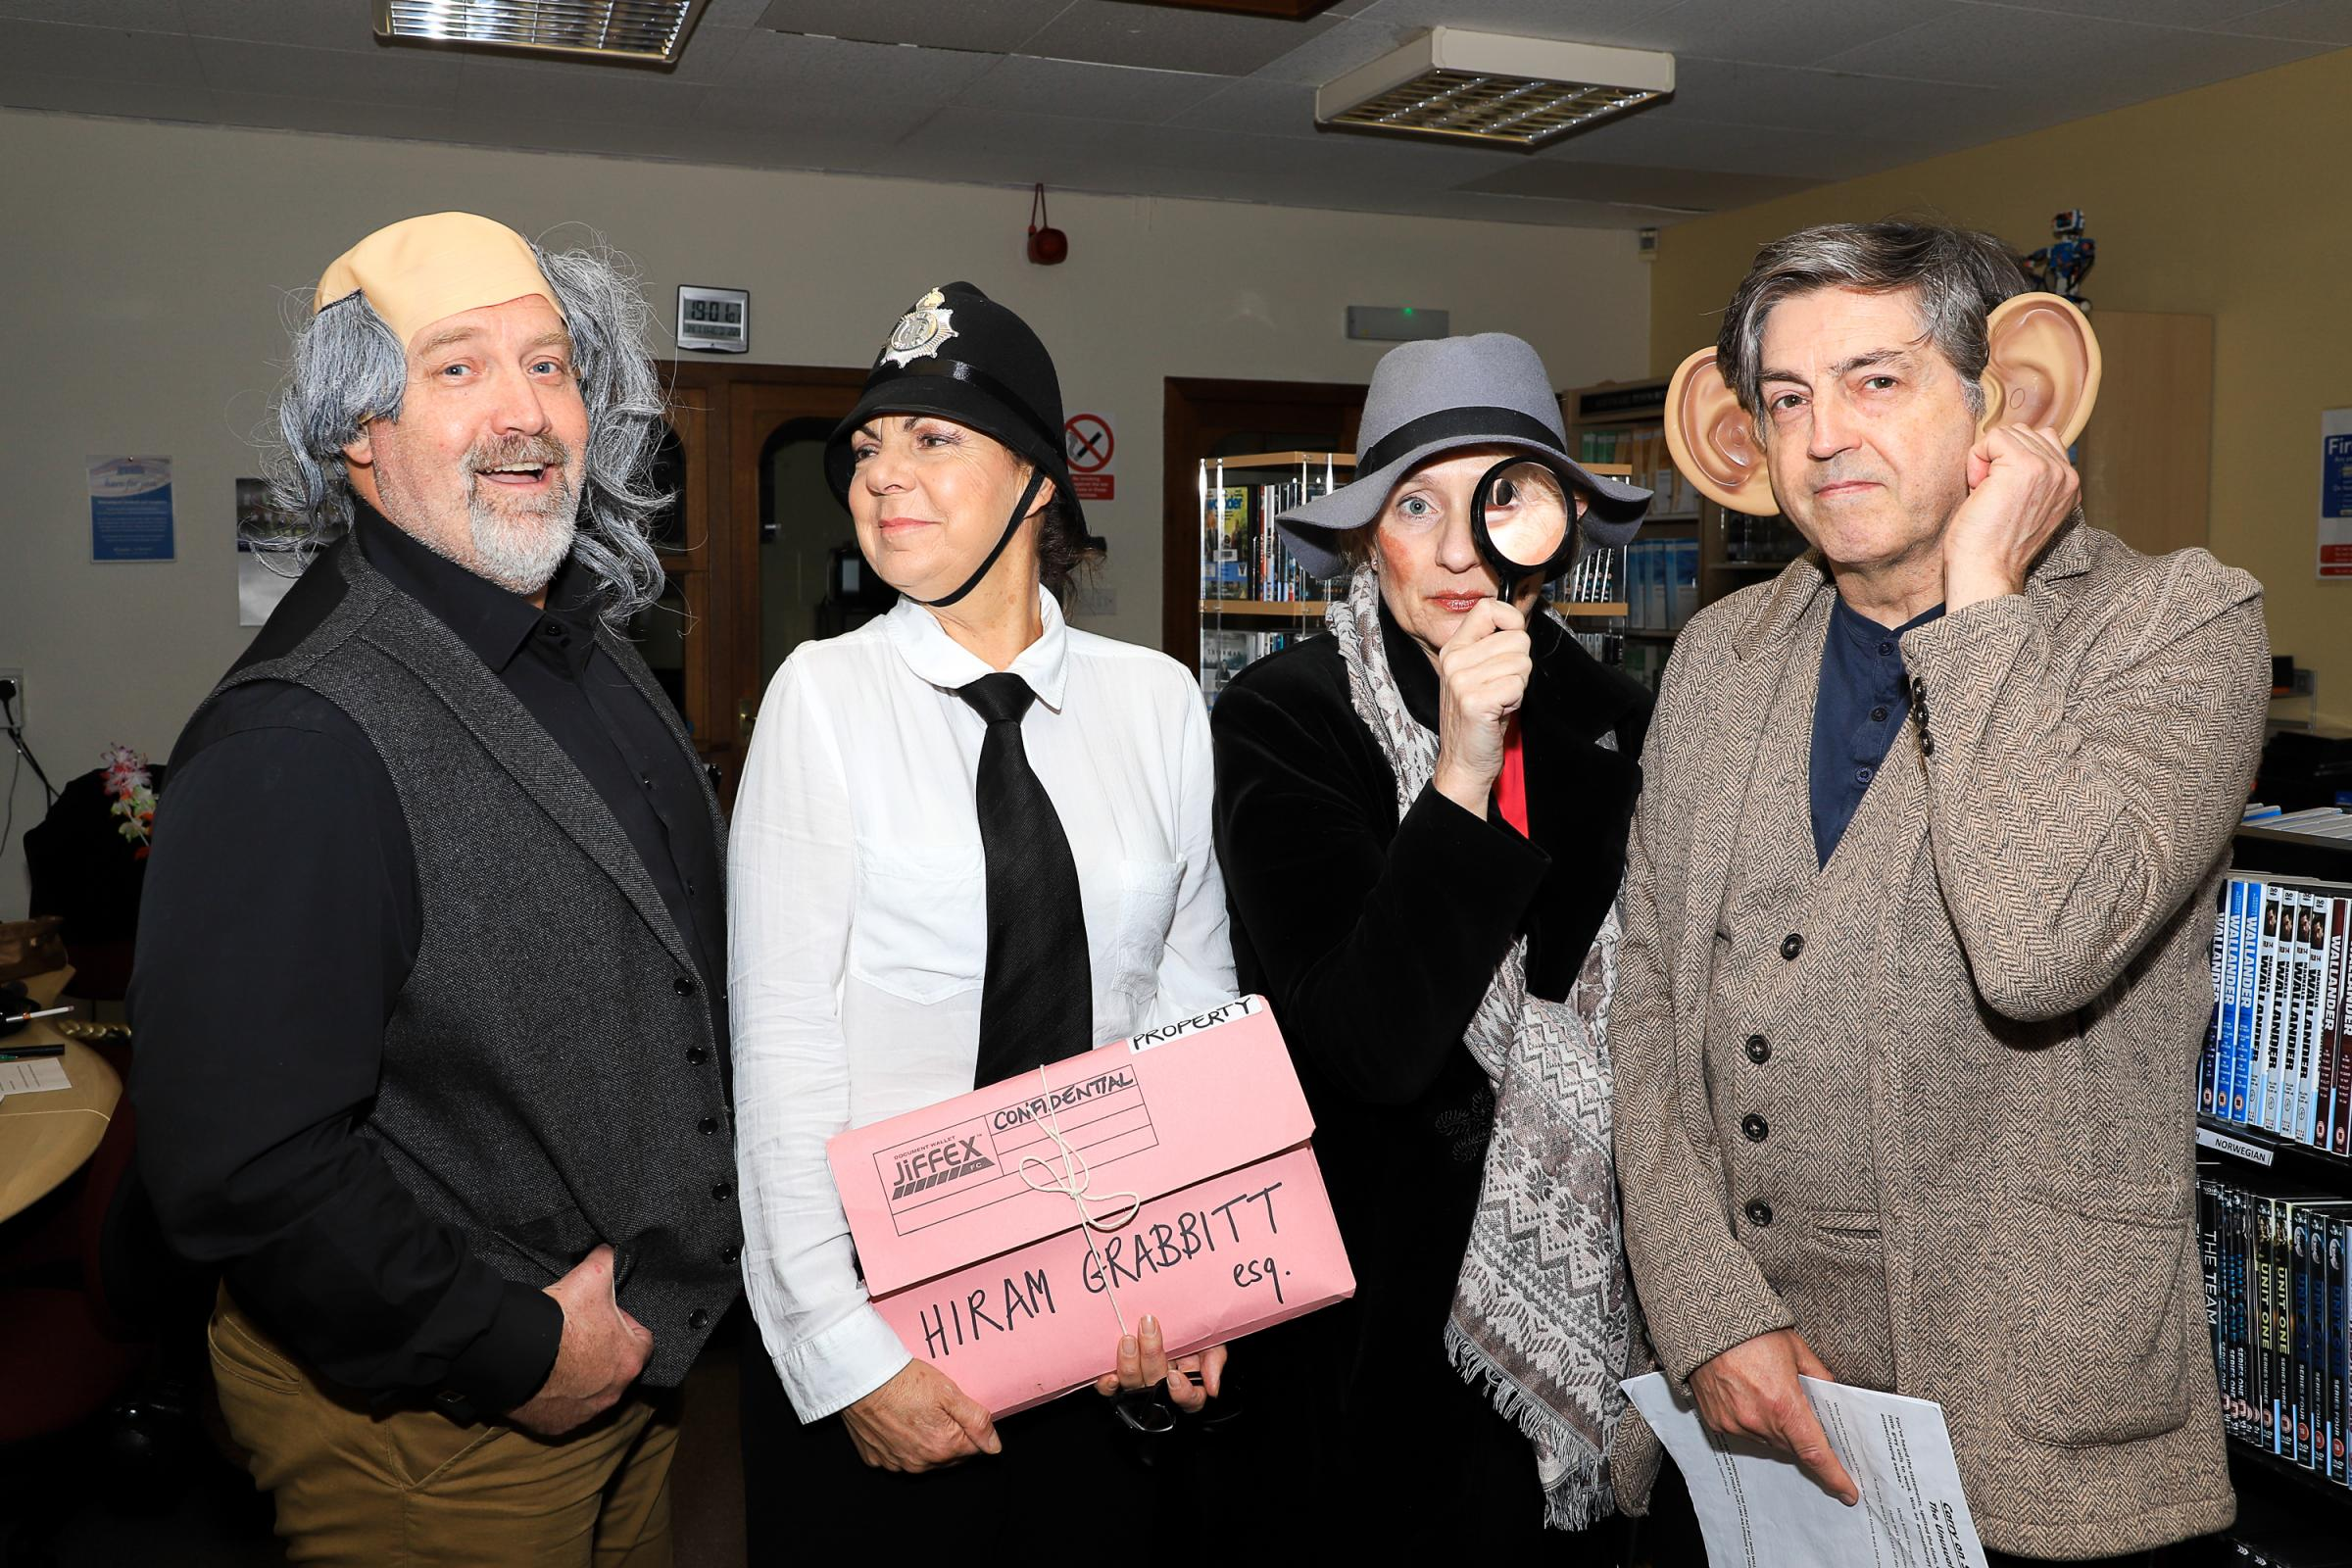 SLEUTHING STARS: Pictured are Michael J Malone, Pat Young, Caro Ramsay and Douglas Skelton.